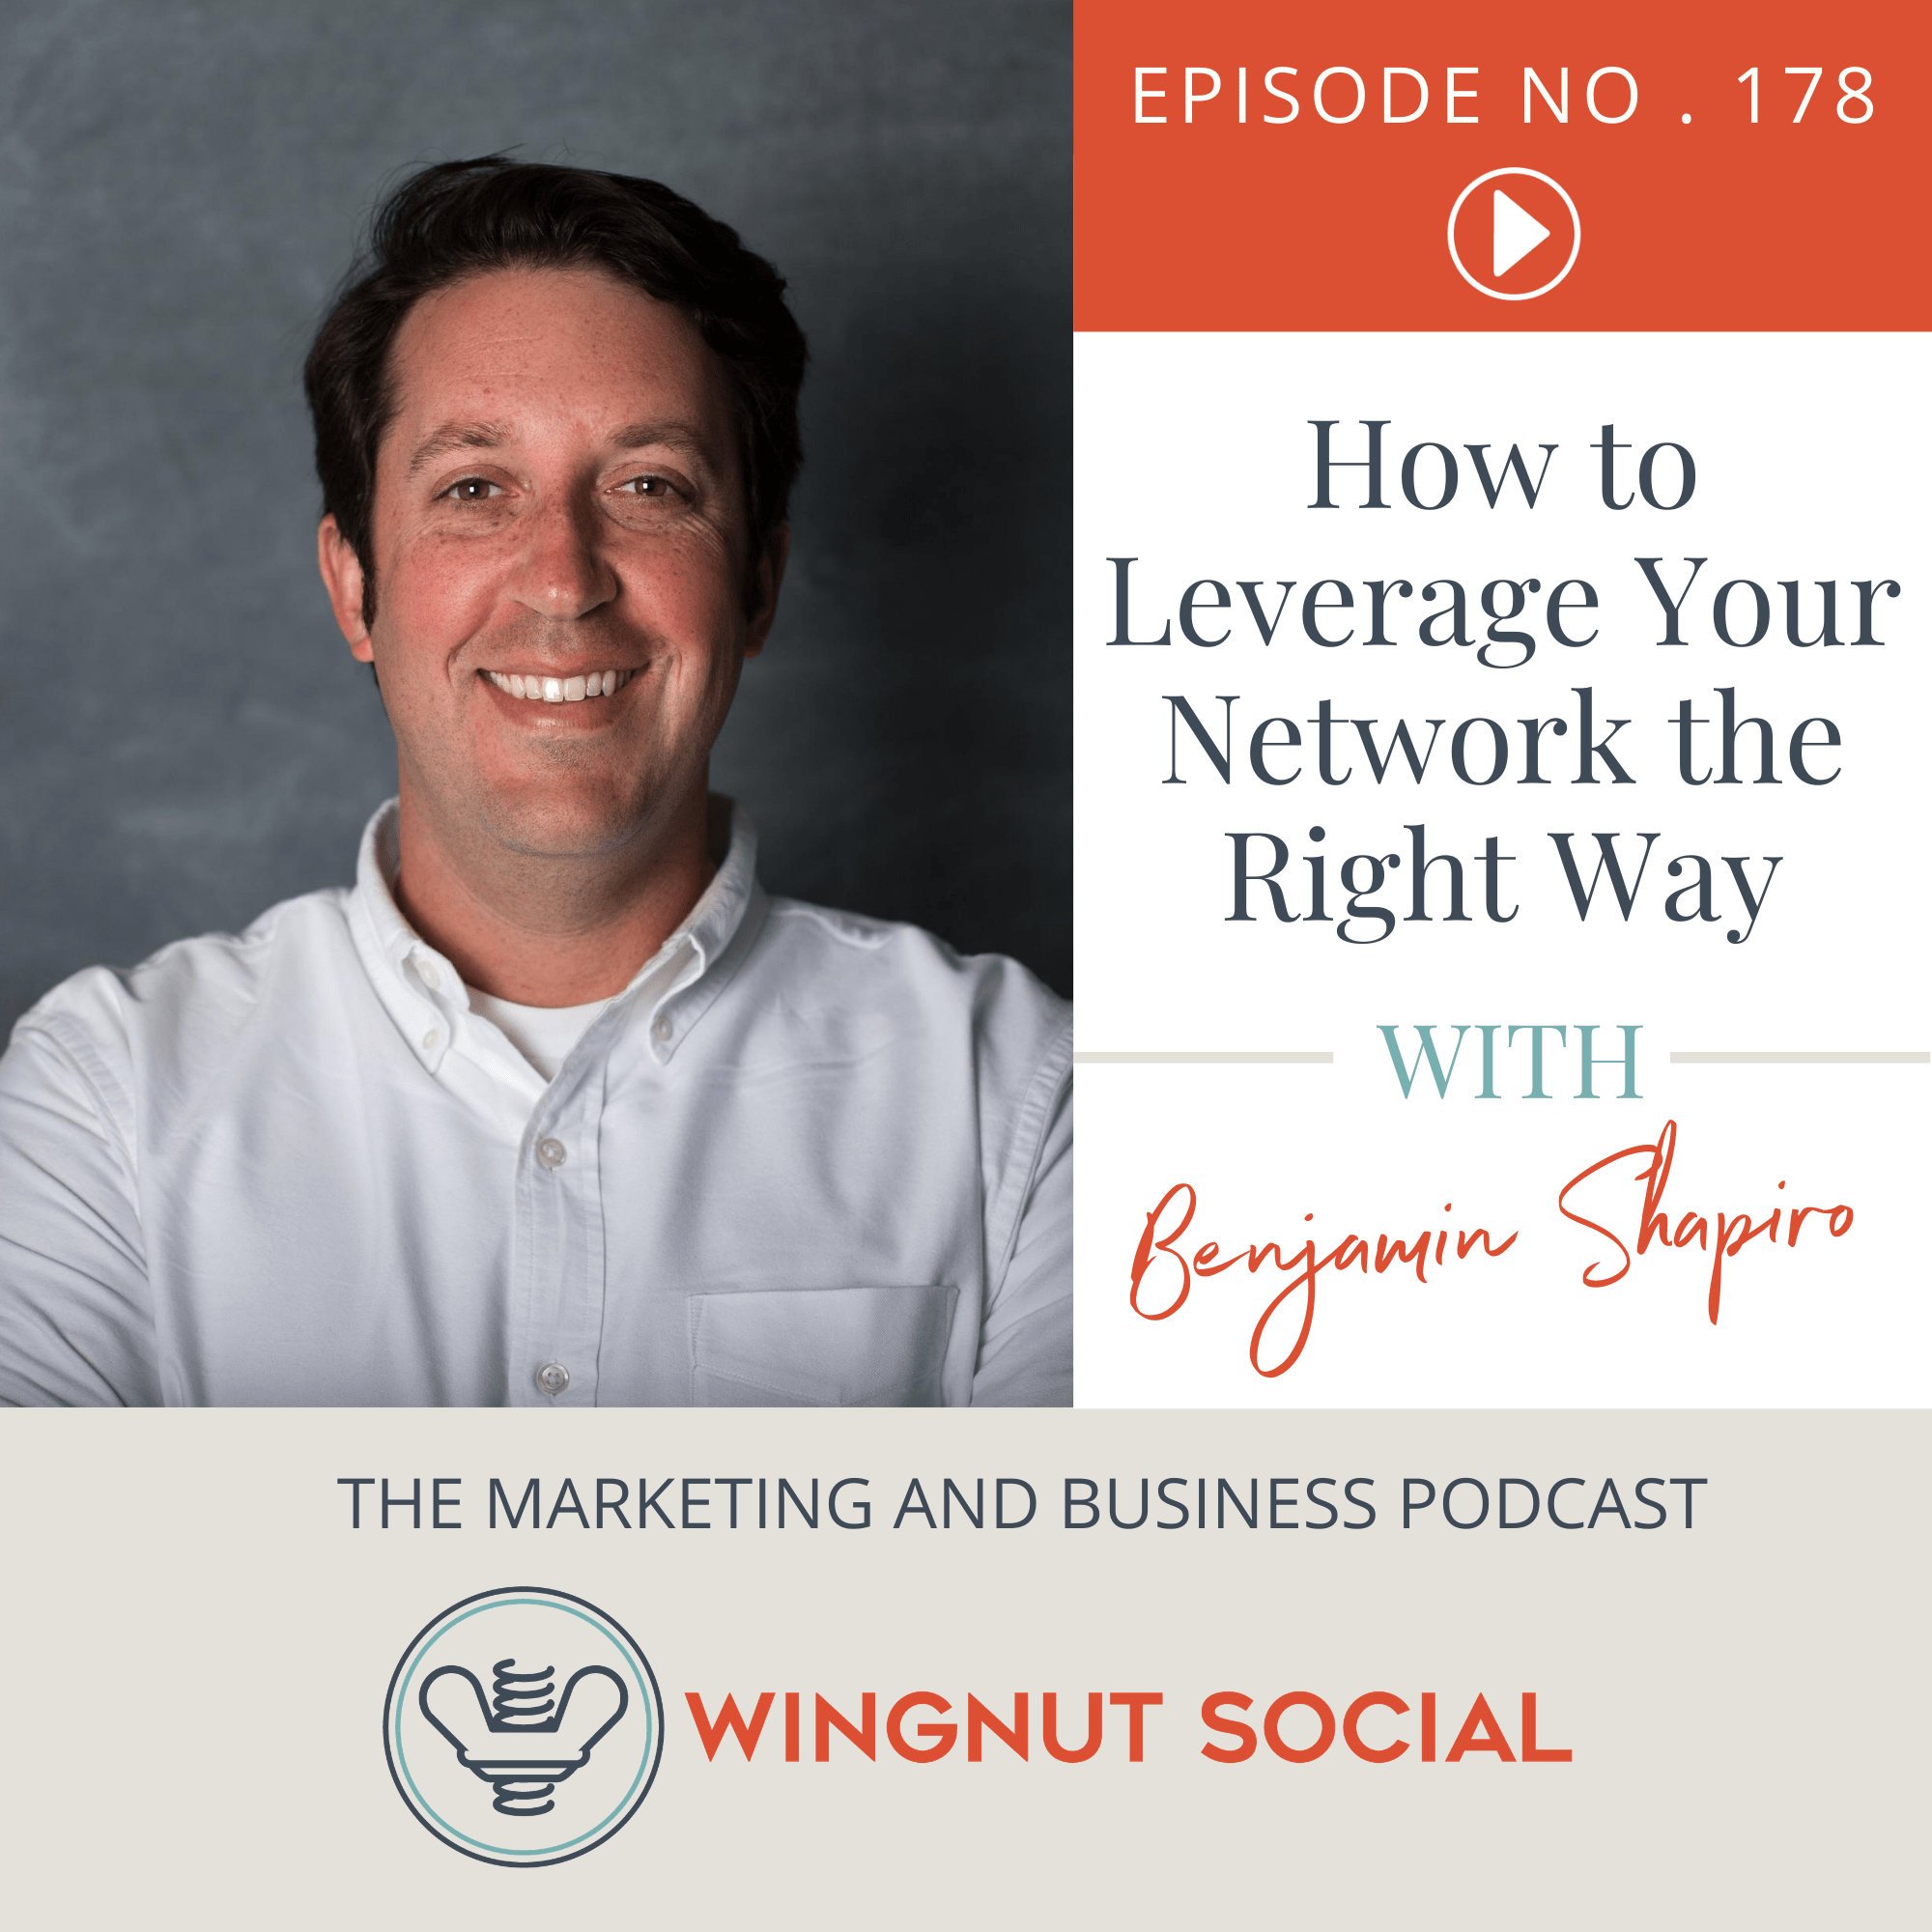 How to Leverage Your Network the Right Way with Benjamin Shapiro - Episode 178